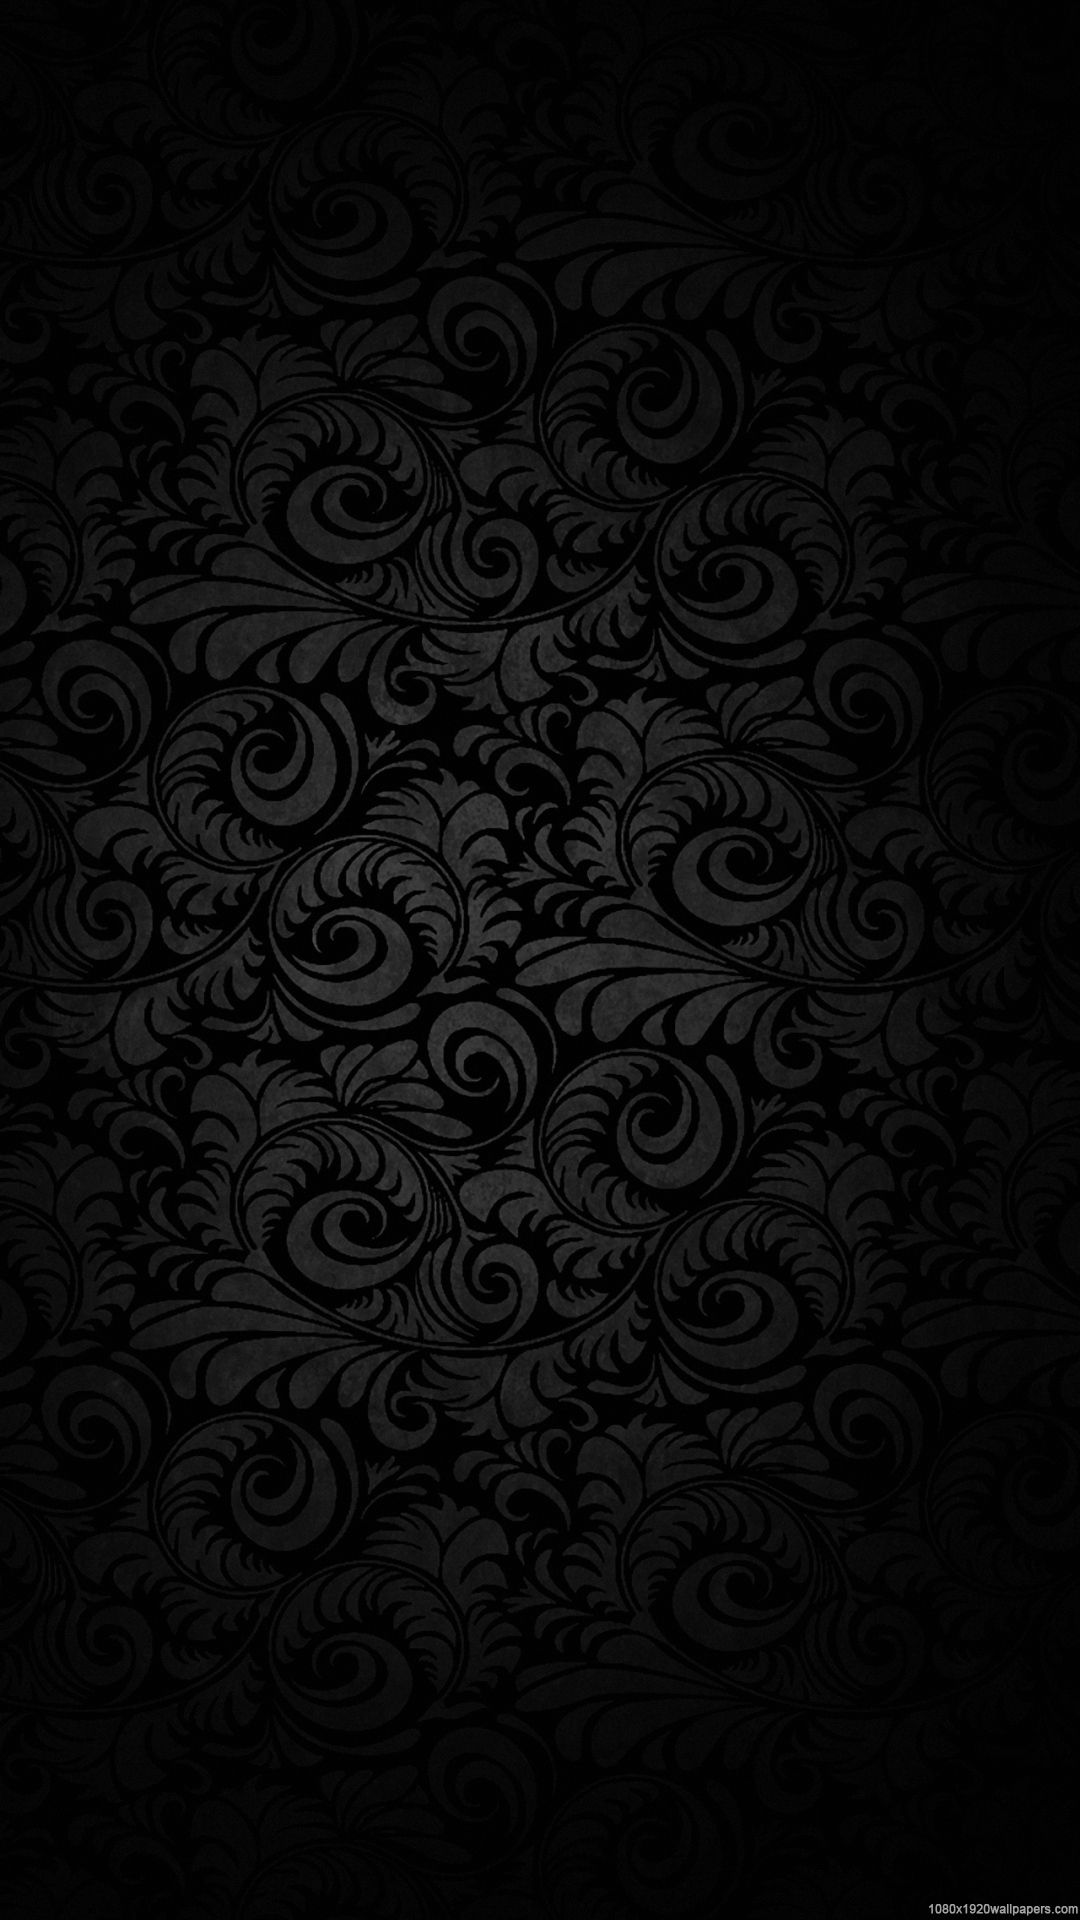 Black Wallpaper For Mobile Posted By Michelle Anderson